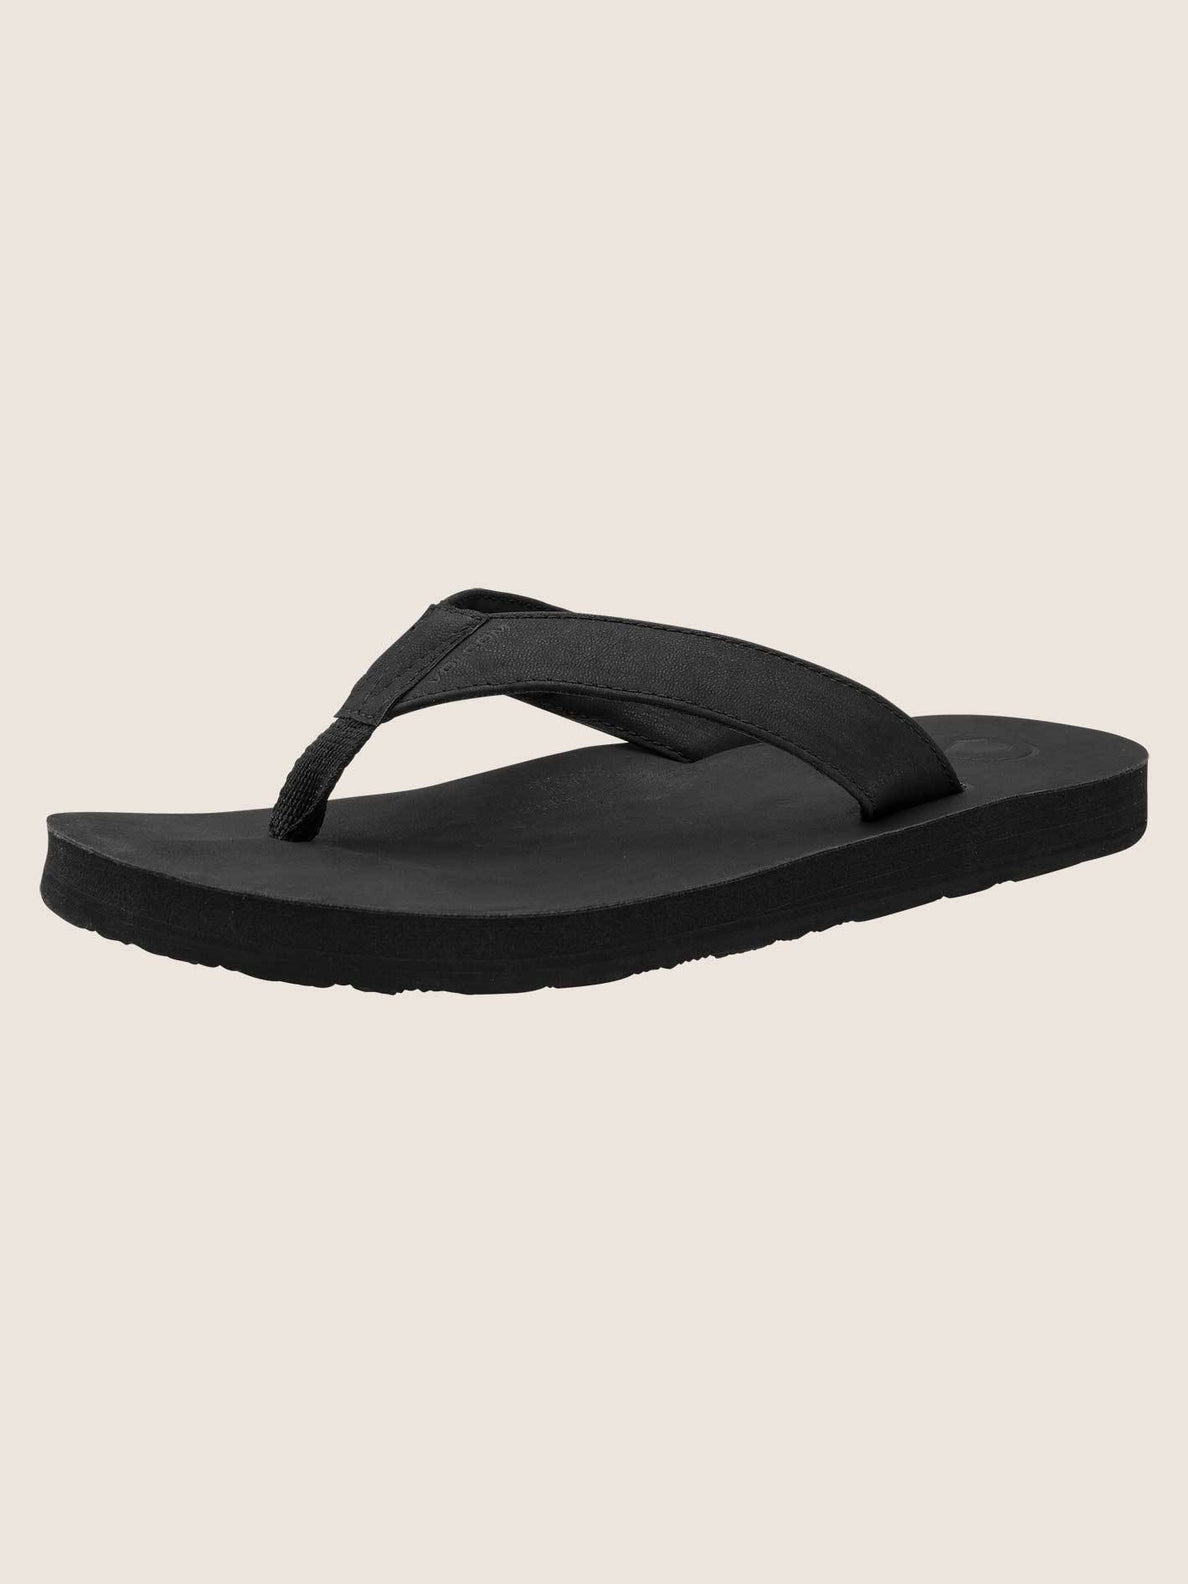 Fathom Sandals In Black, Back View